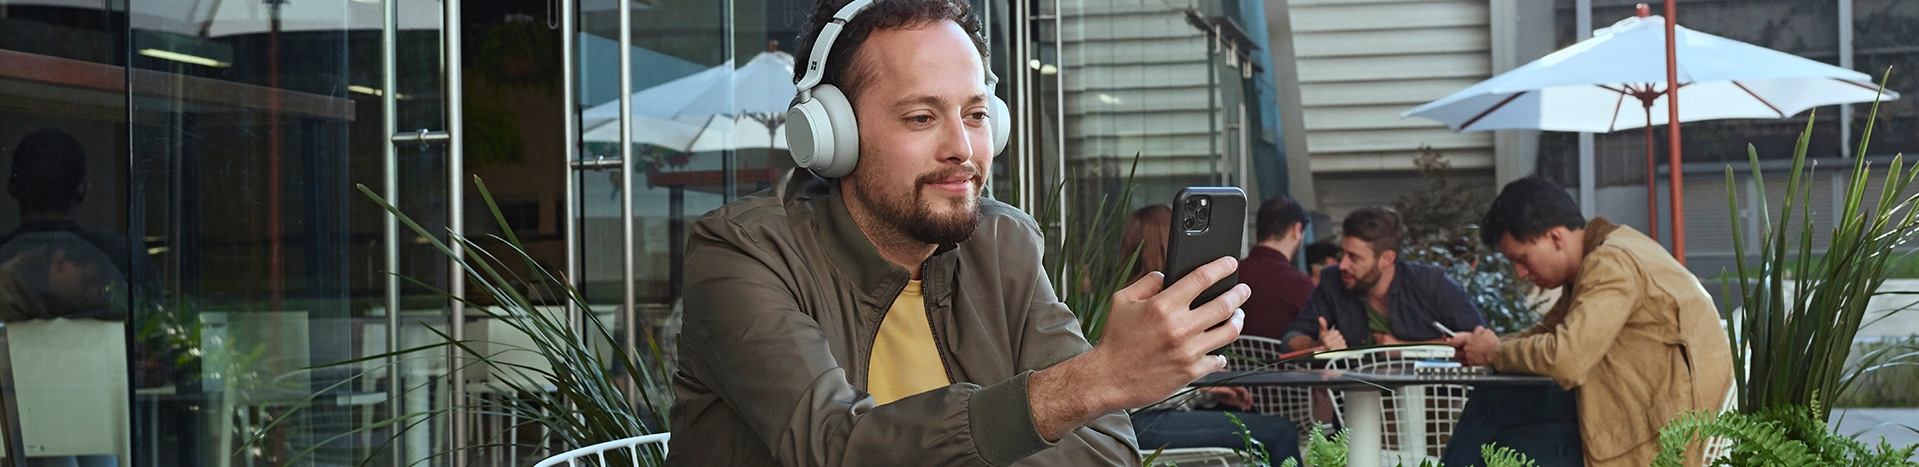 Person with headphones looking at a mobile device